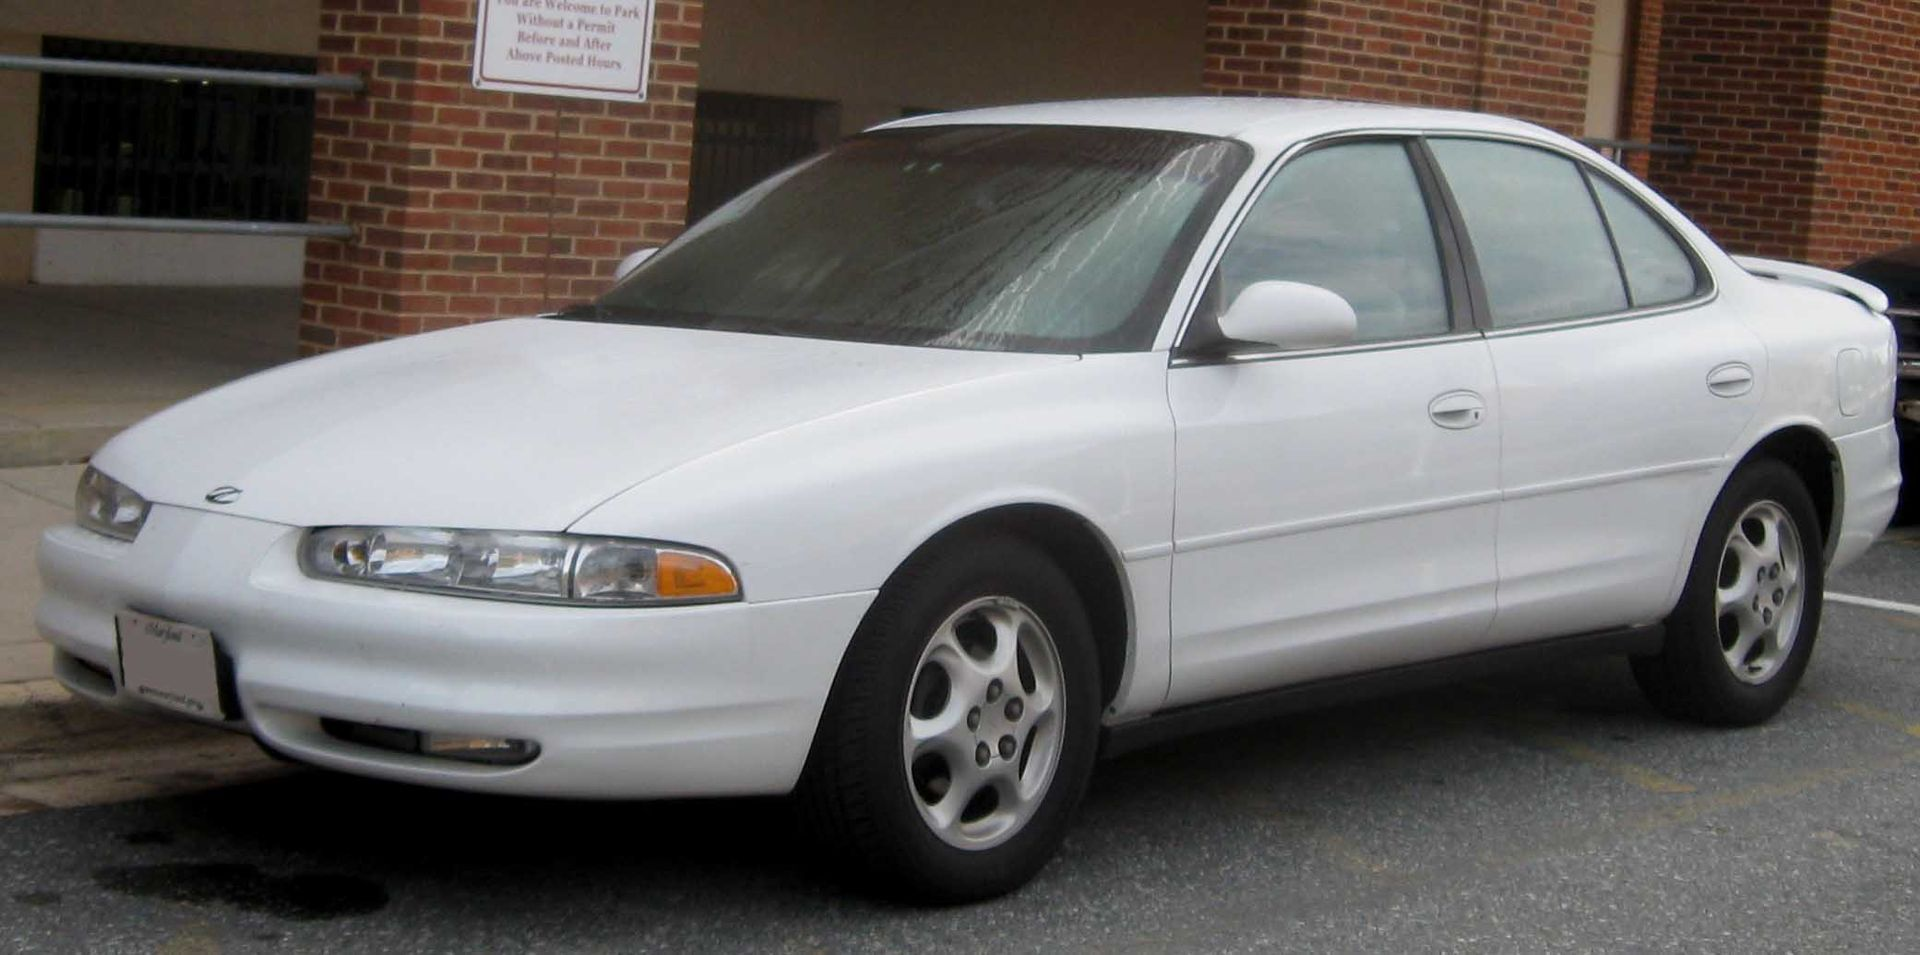 Oldsmobile Intrigue Wikipedia